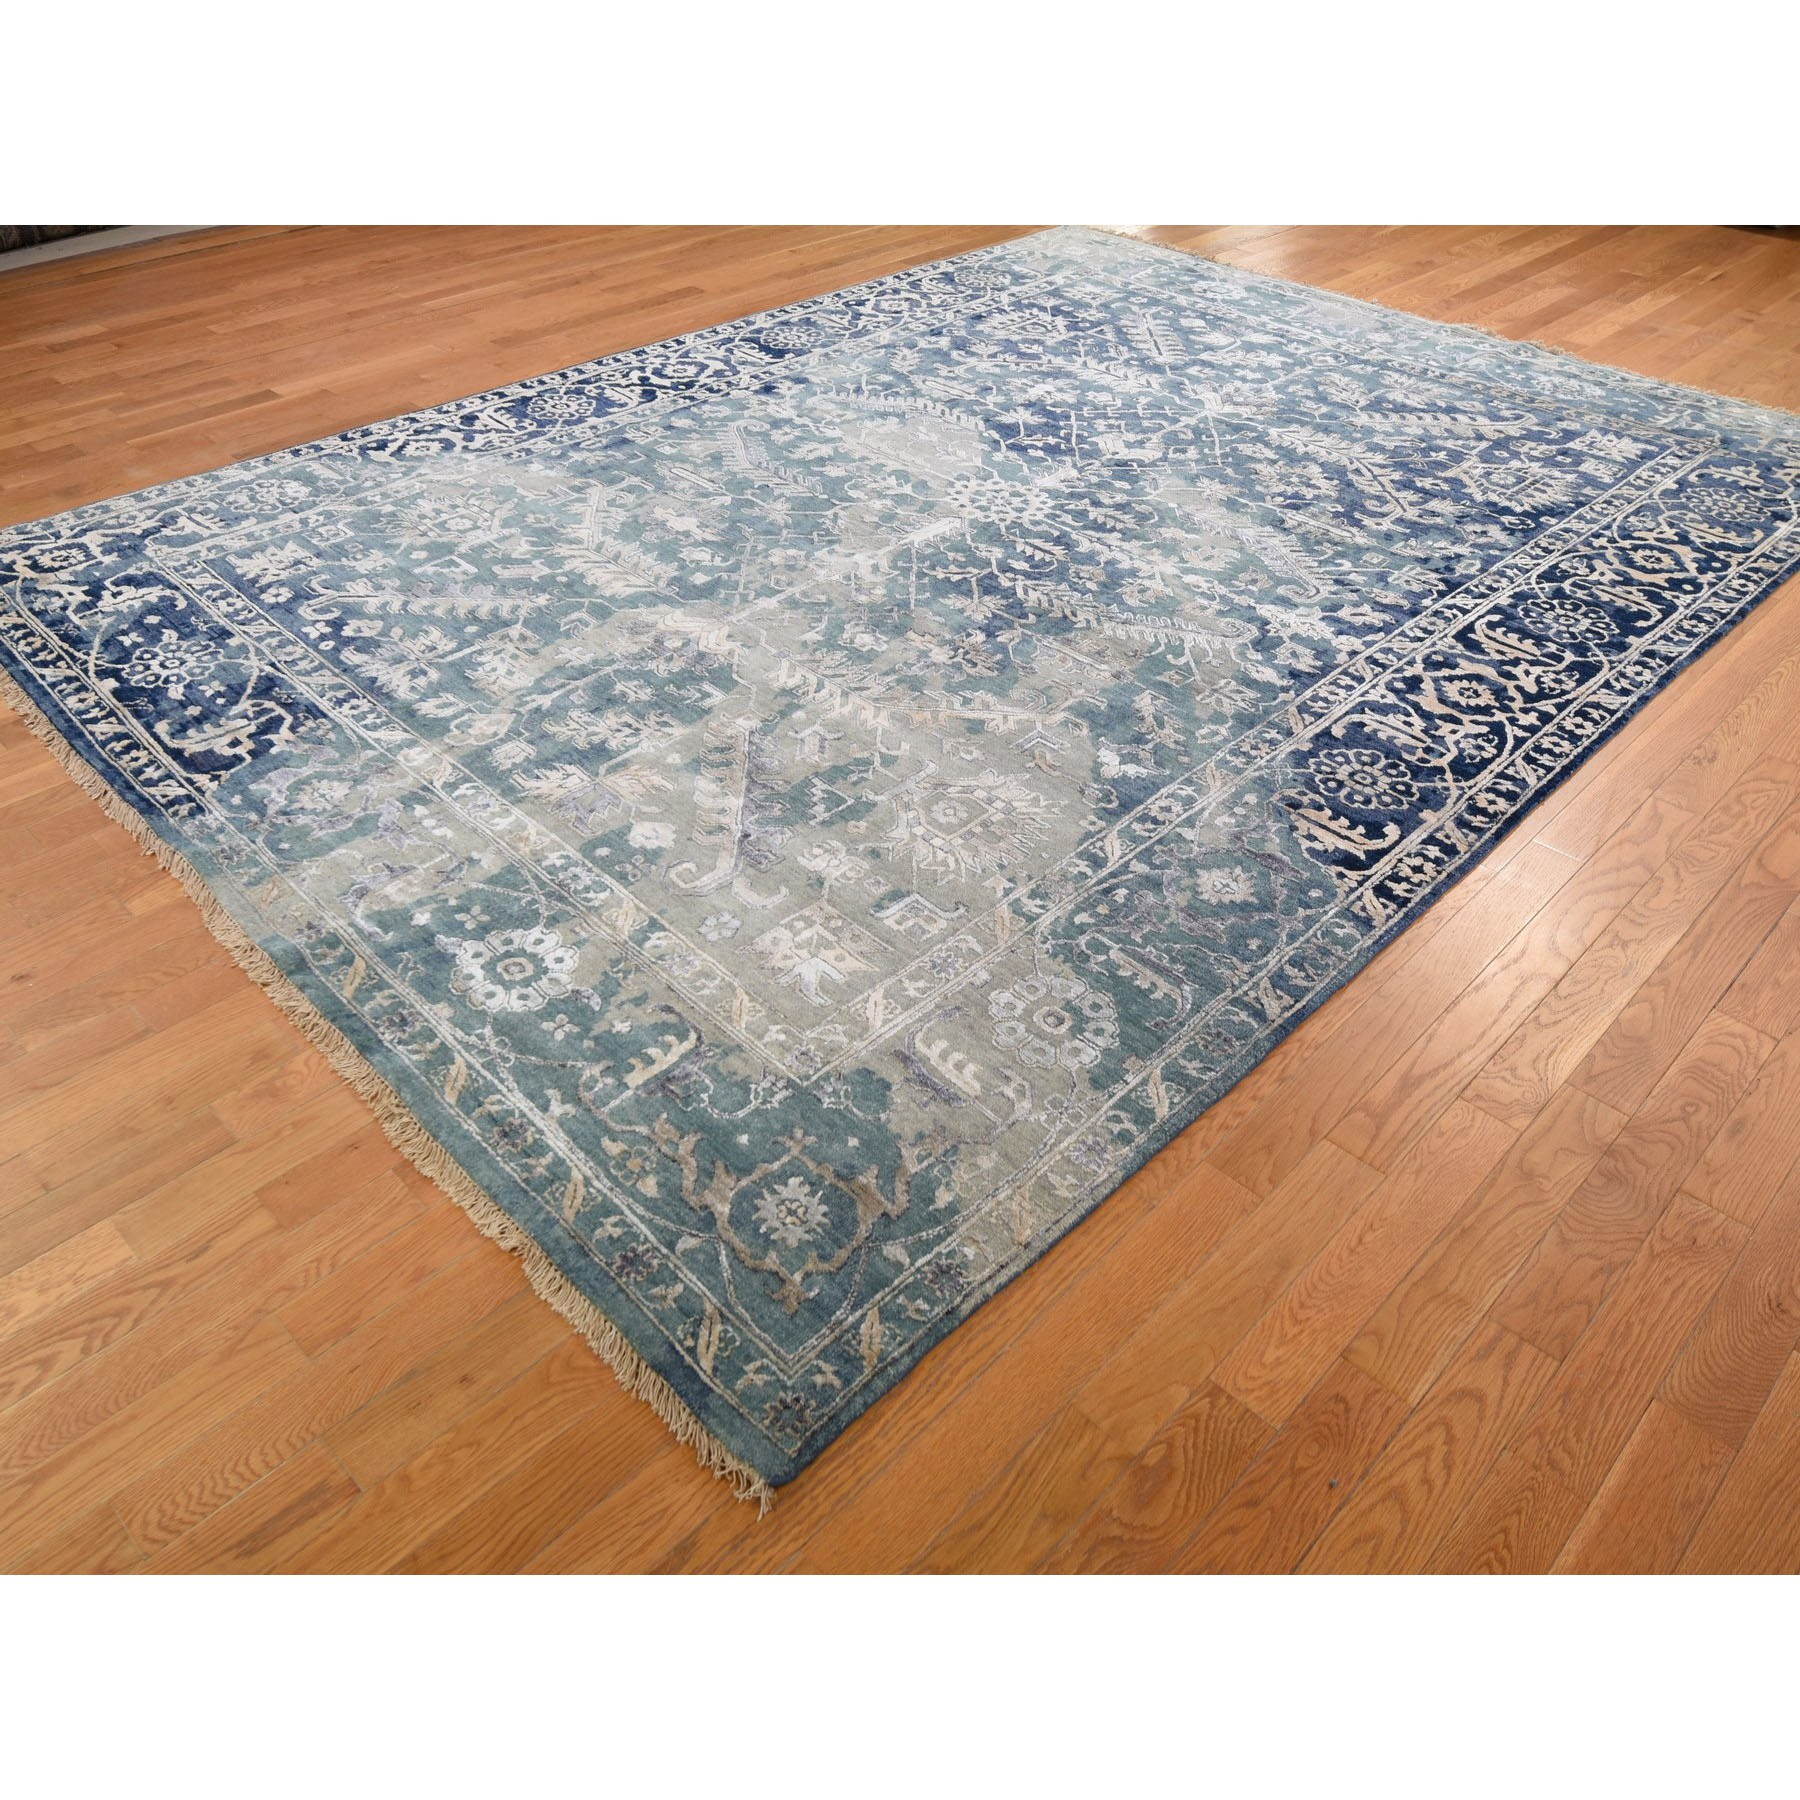 8-10 x12- Broken Persian Heriz All Over Design Wool And Silk Hand Knotted Oriental Rug